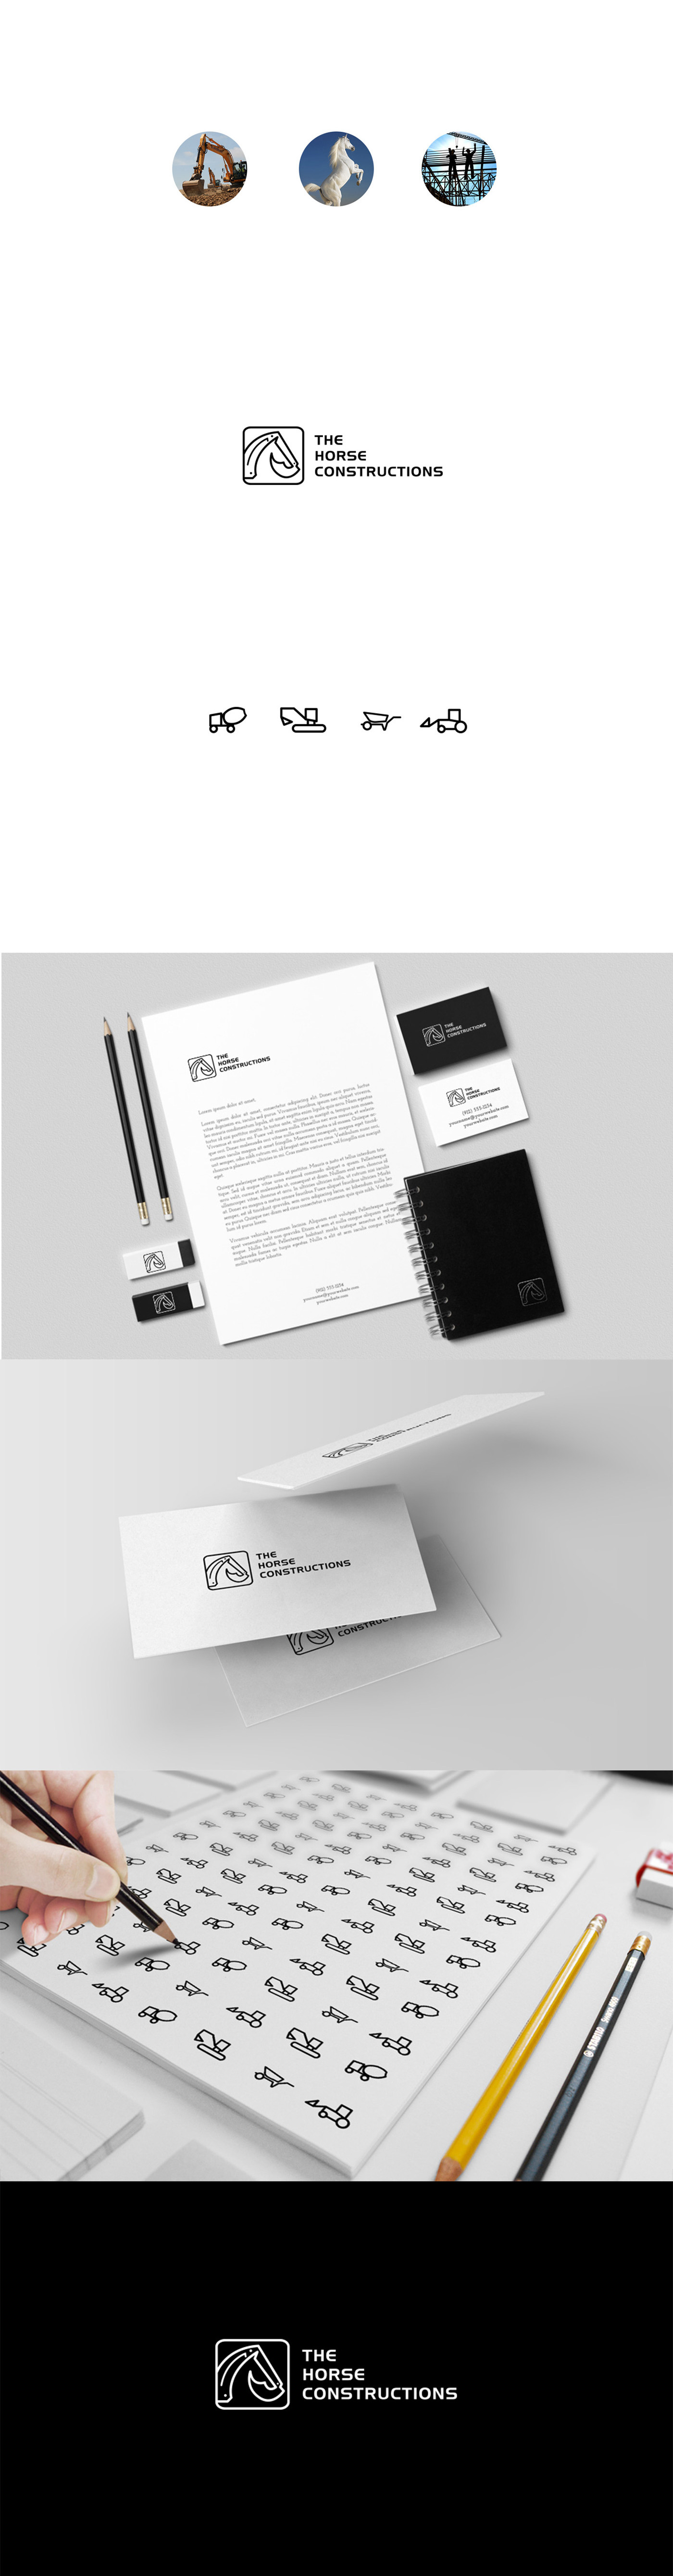 The Horse Constructions by Bransense Branding